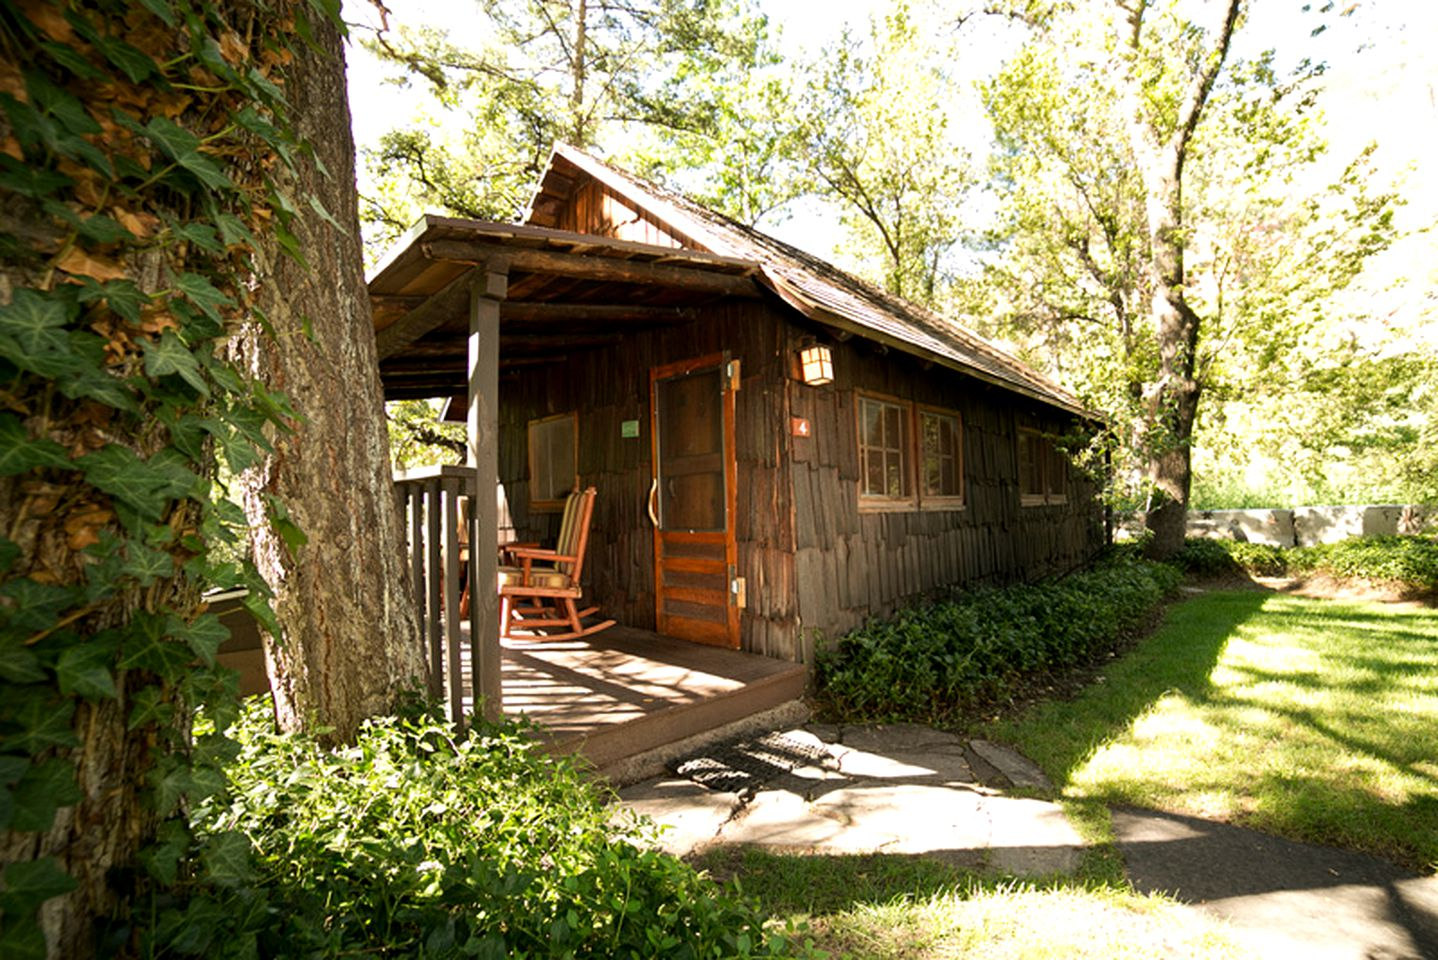 Rustic cabin rental in a Sedona bed & breakfast.